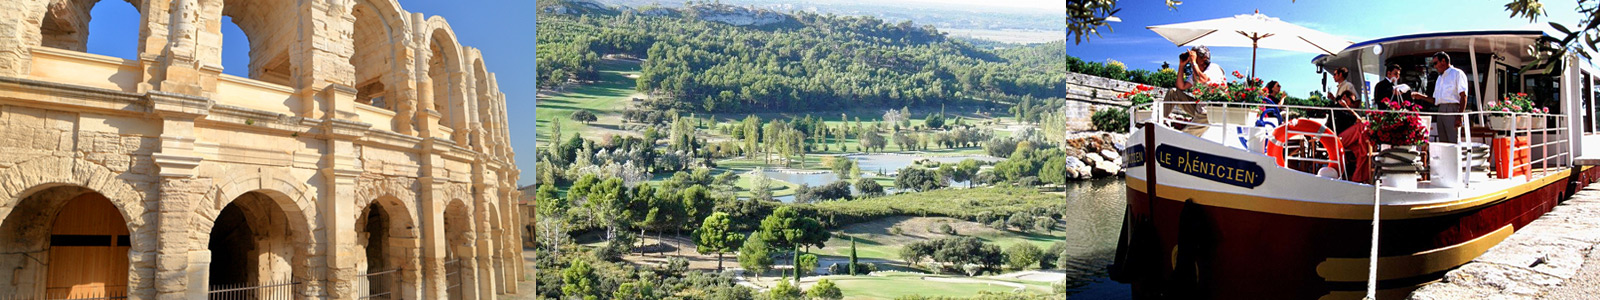 Provence France Golf Barge Cruise with PerryGolf Vacations